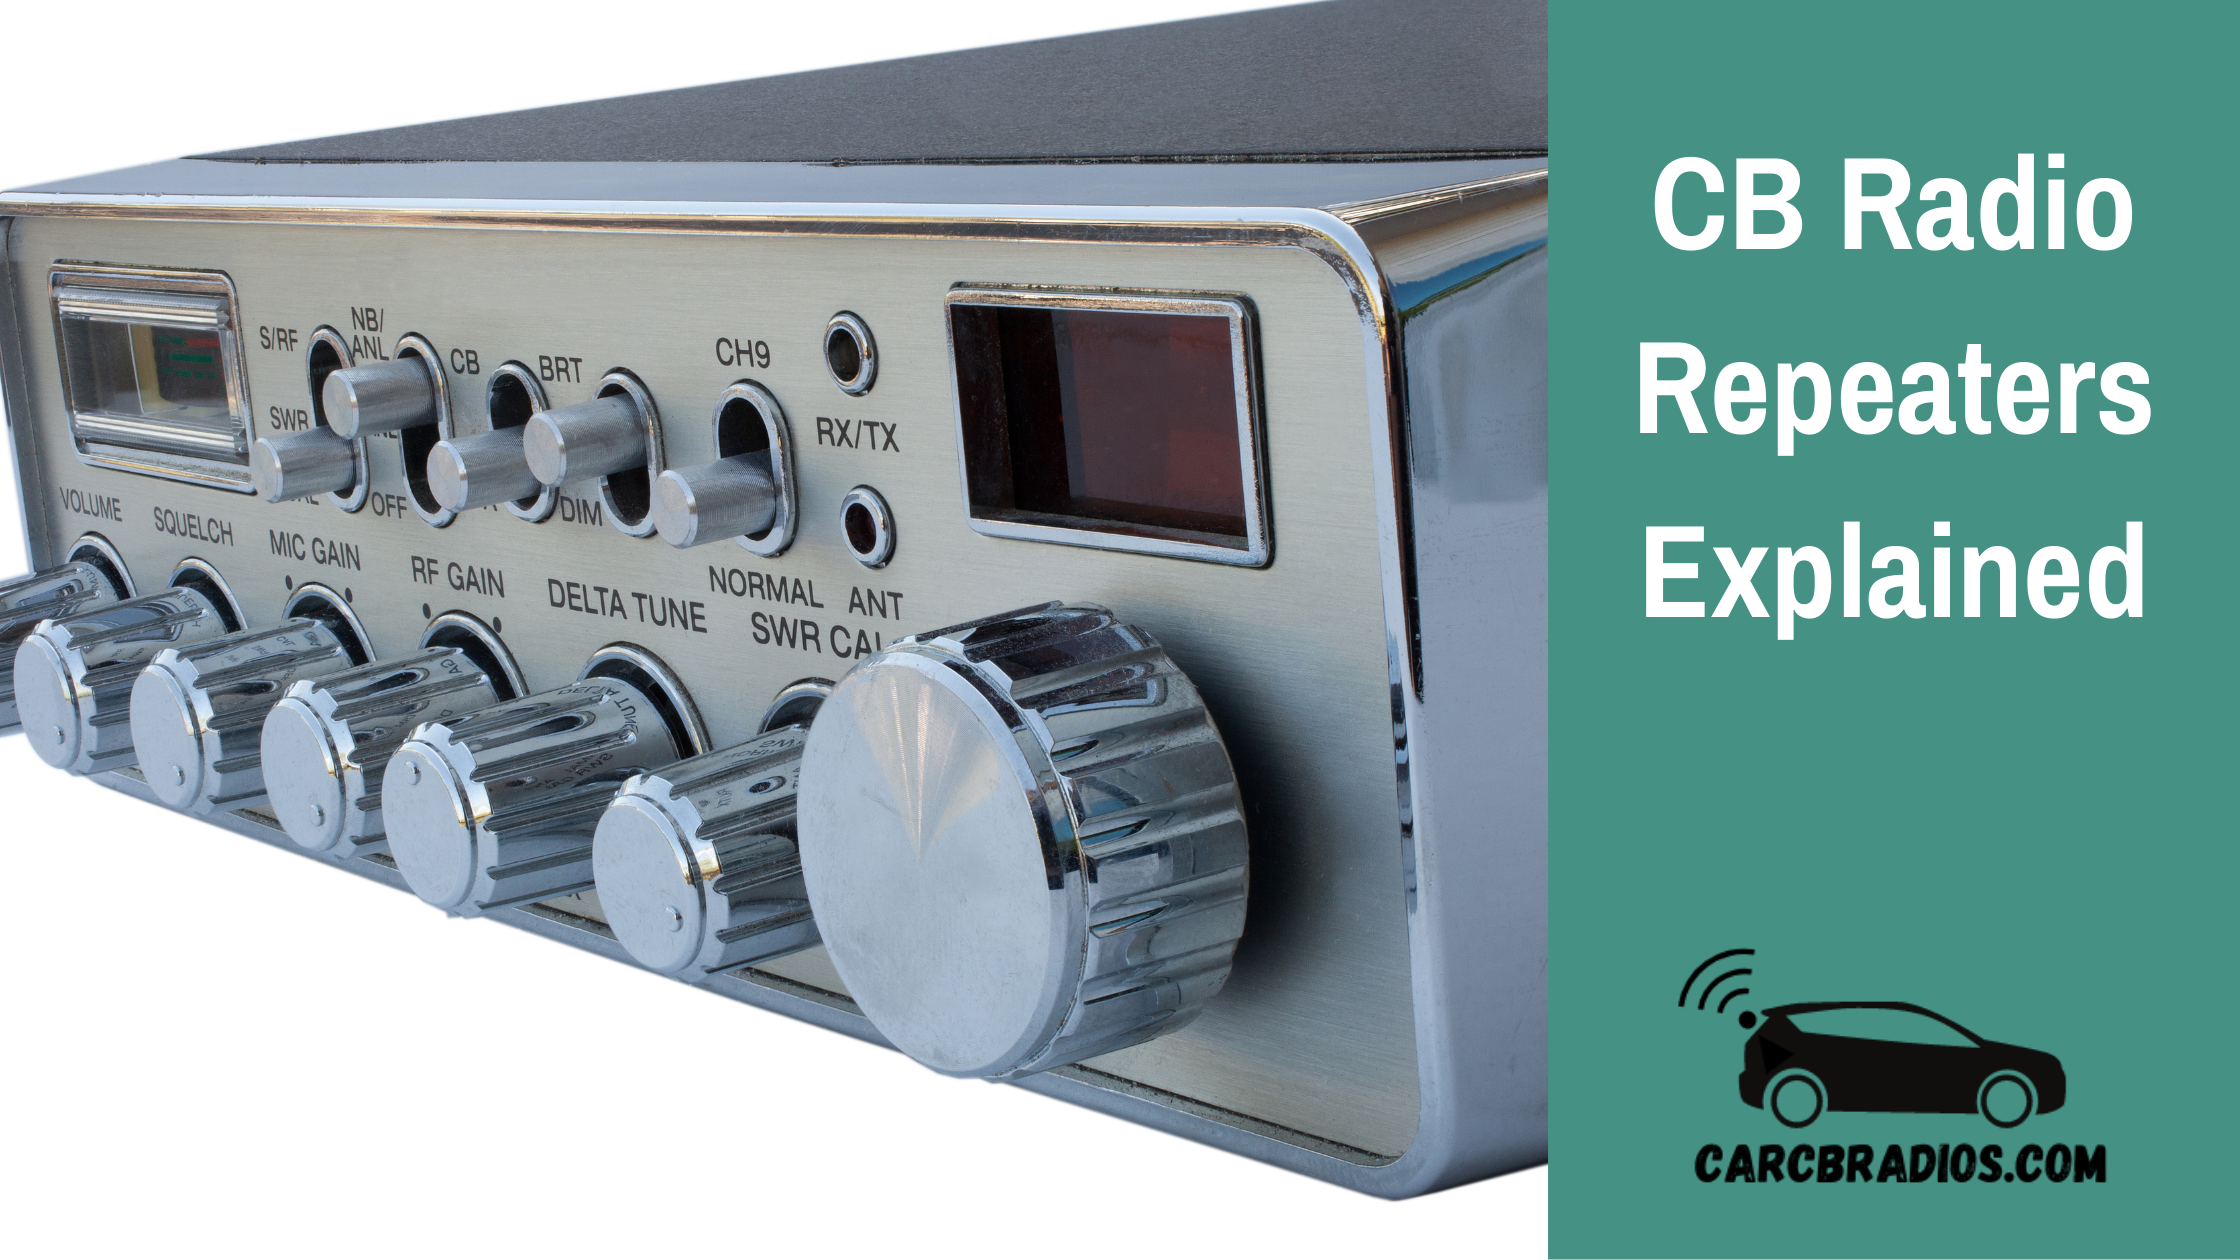 What is a CB Radio Repeater